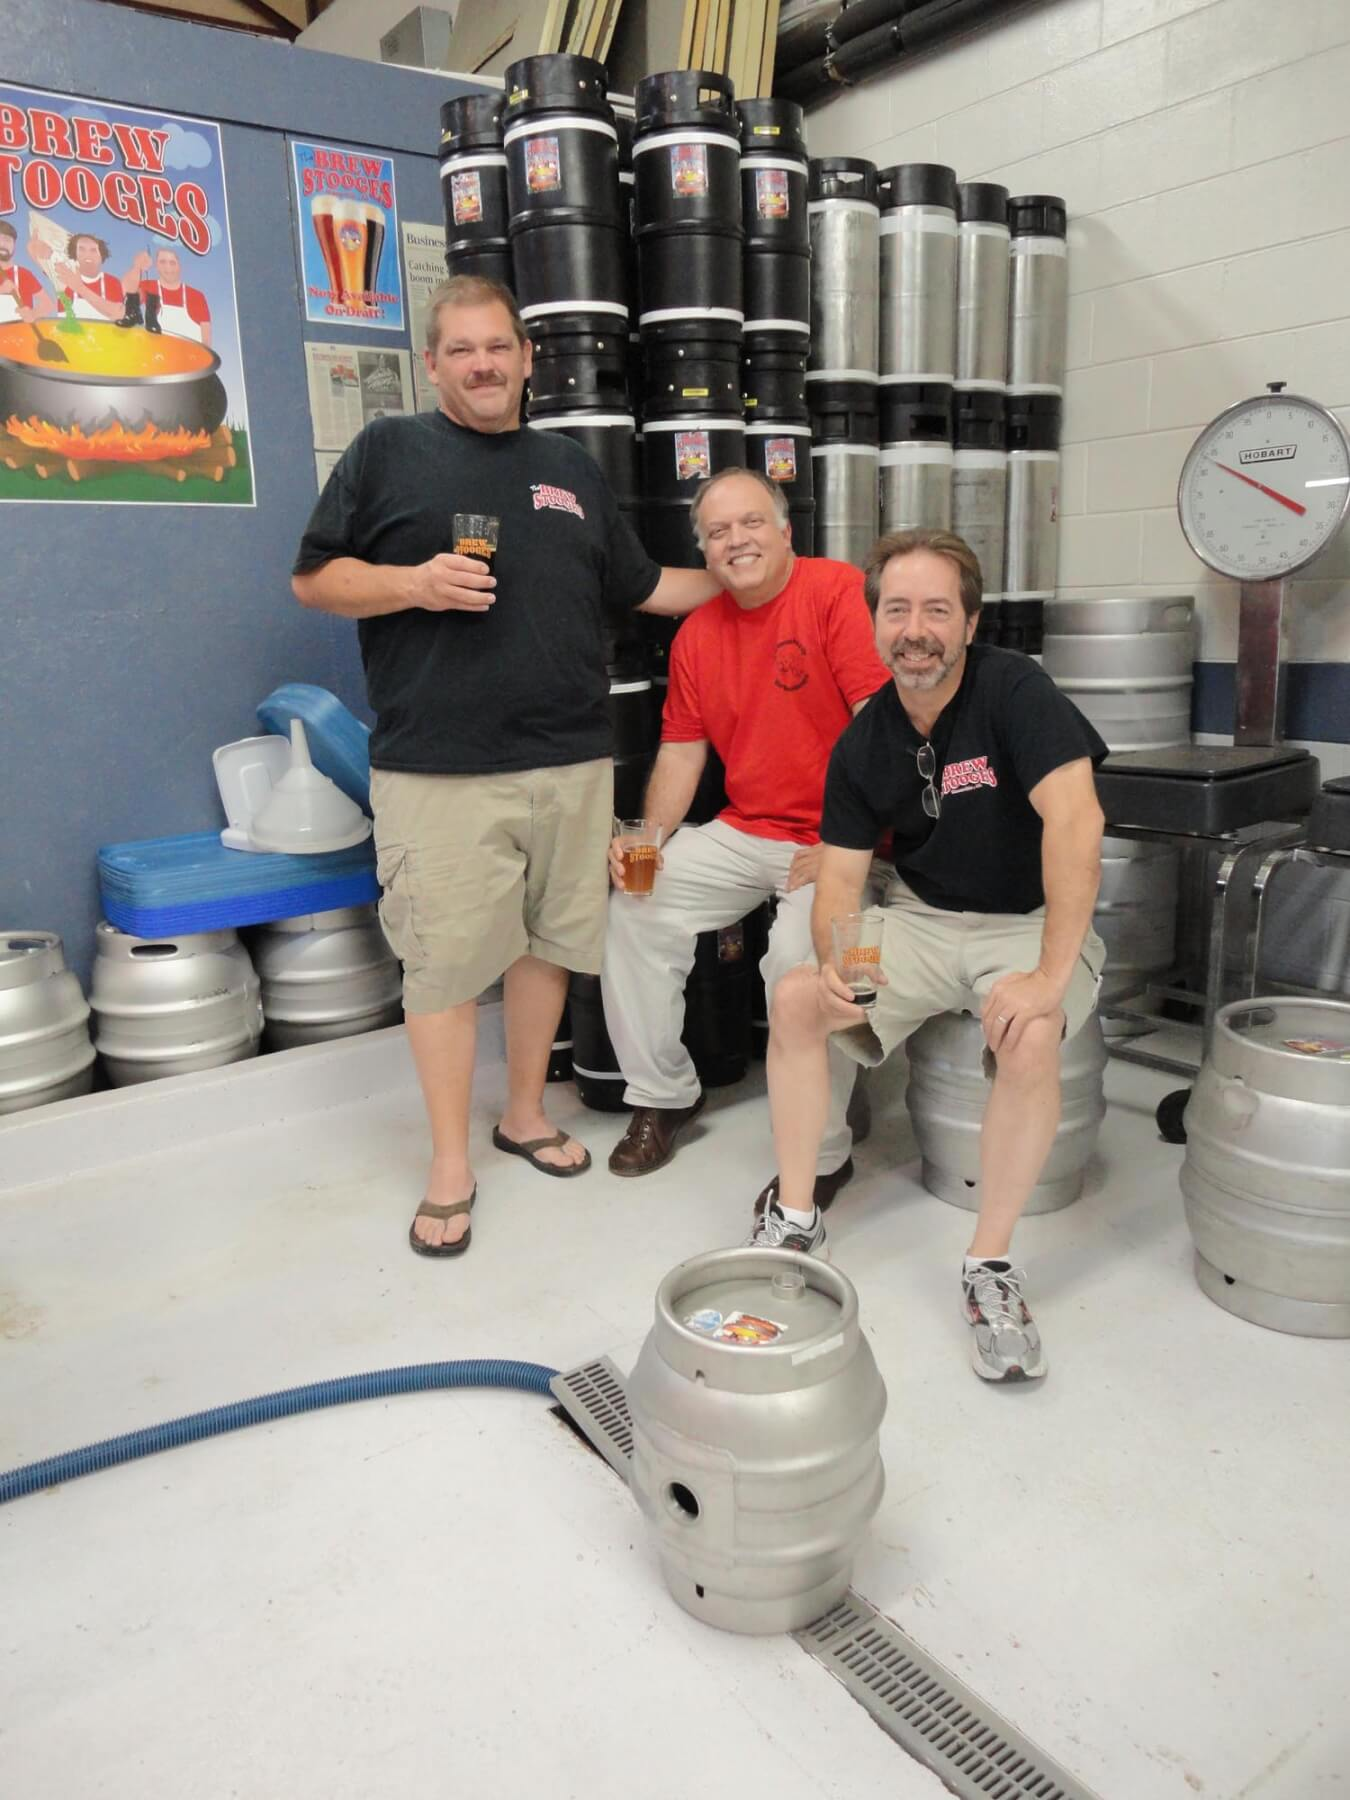 Huntsville's Brew Stooges are engineering craft-ier beers